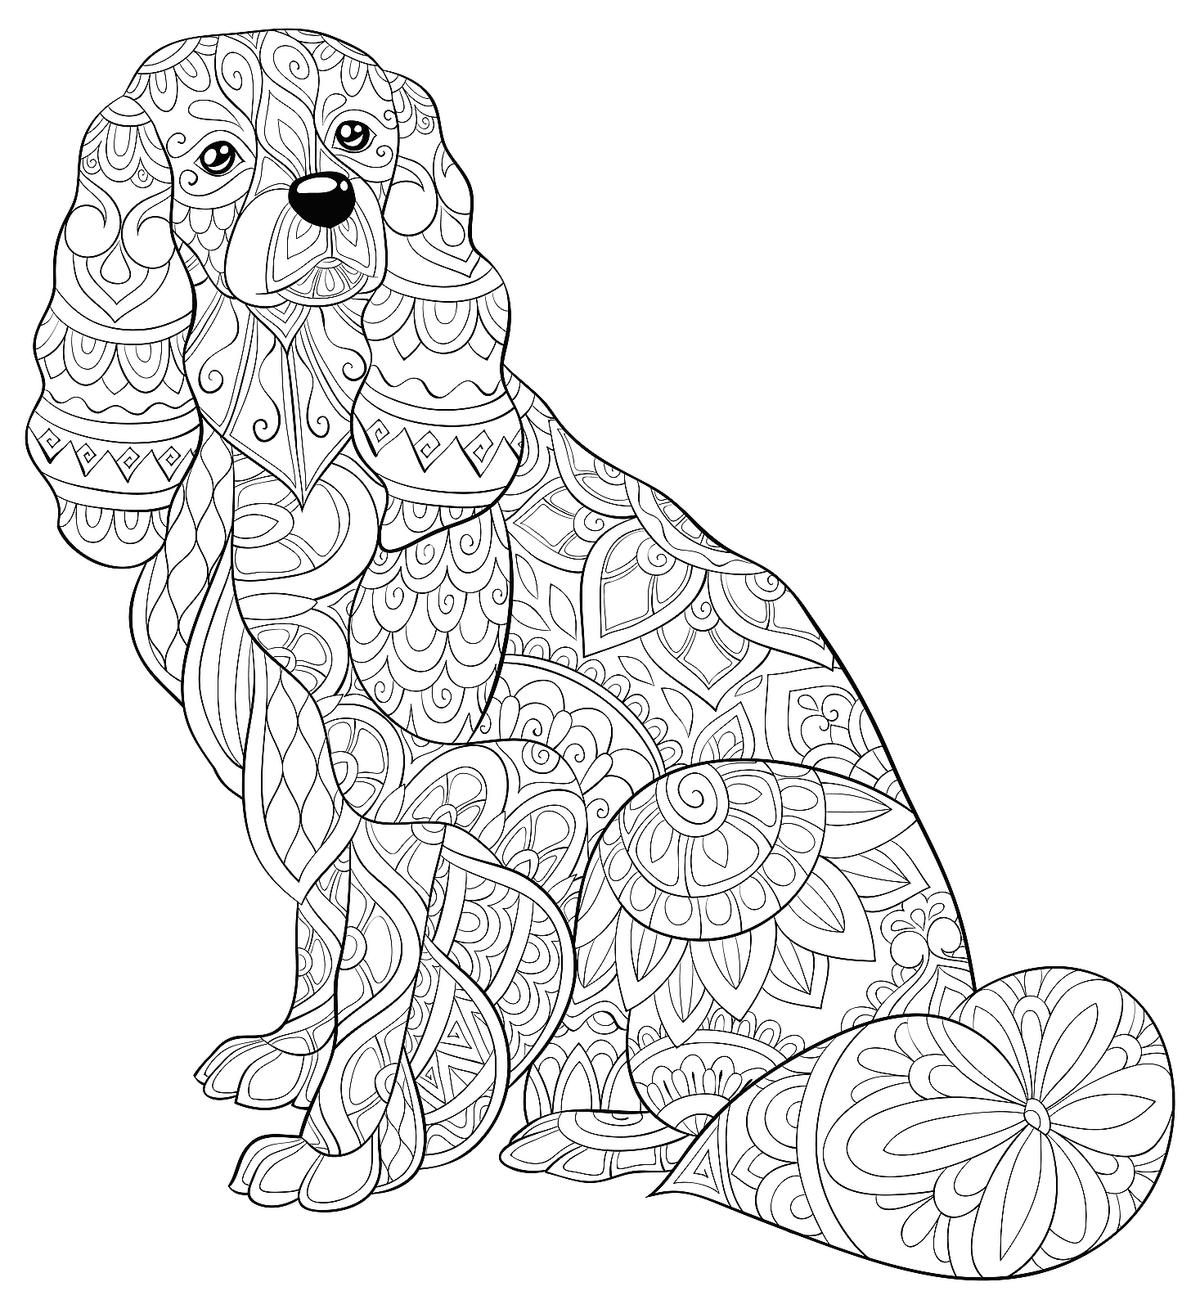 dog color page free printable dog coloring pages for kids dog color page